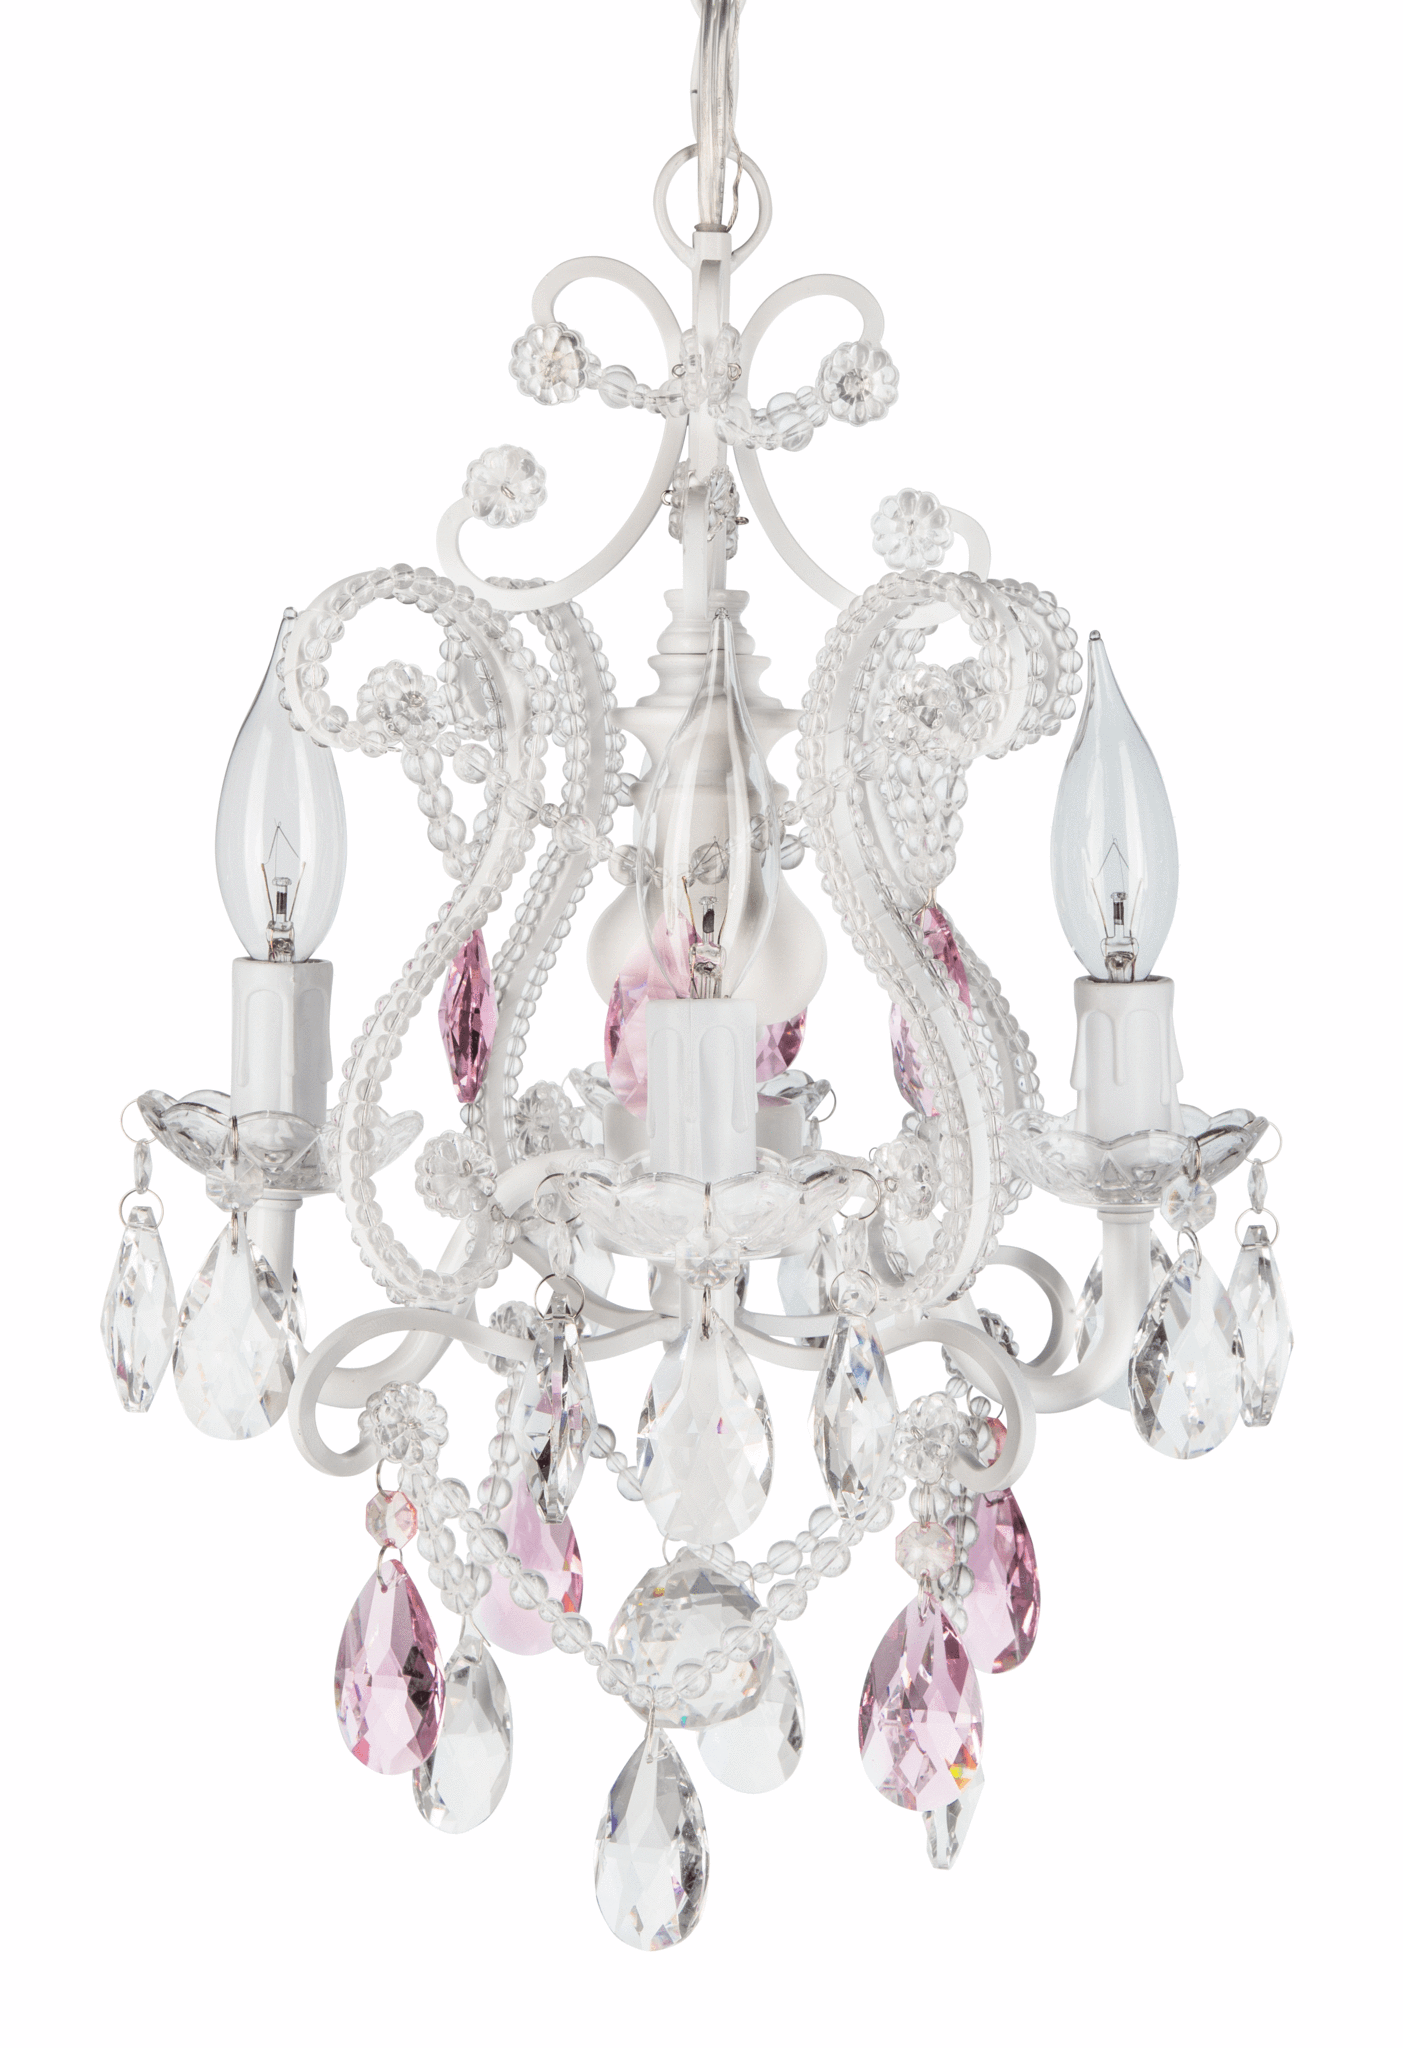 4 Light Mini Crystal Beaded Plug In Chandelier White w Pink